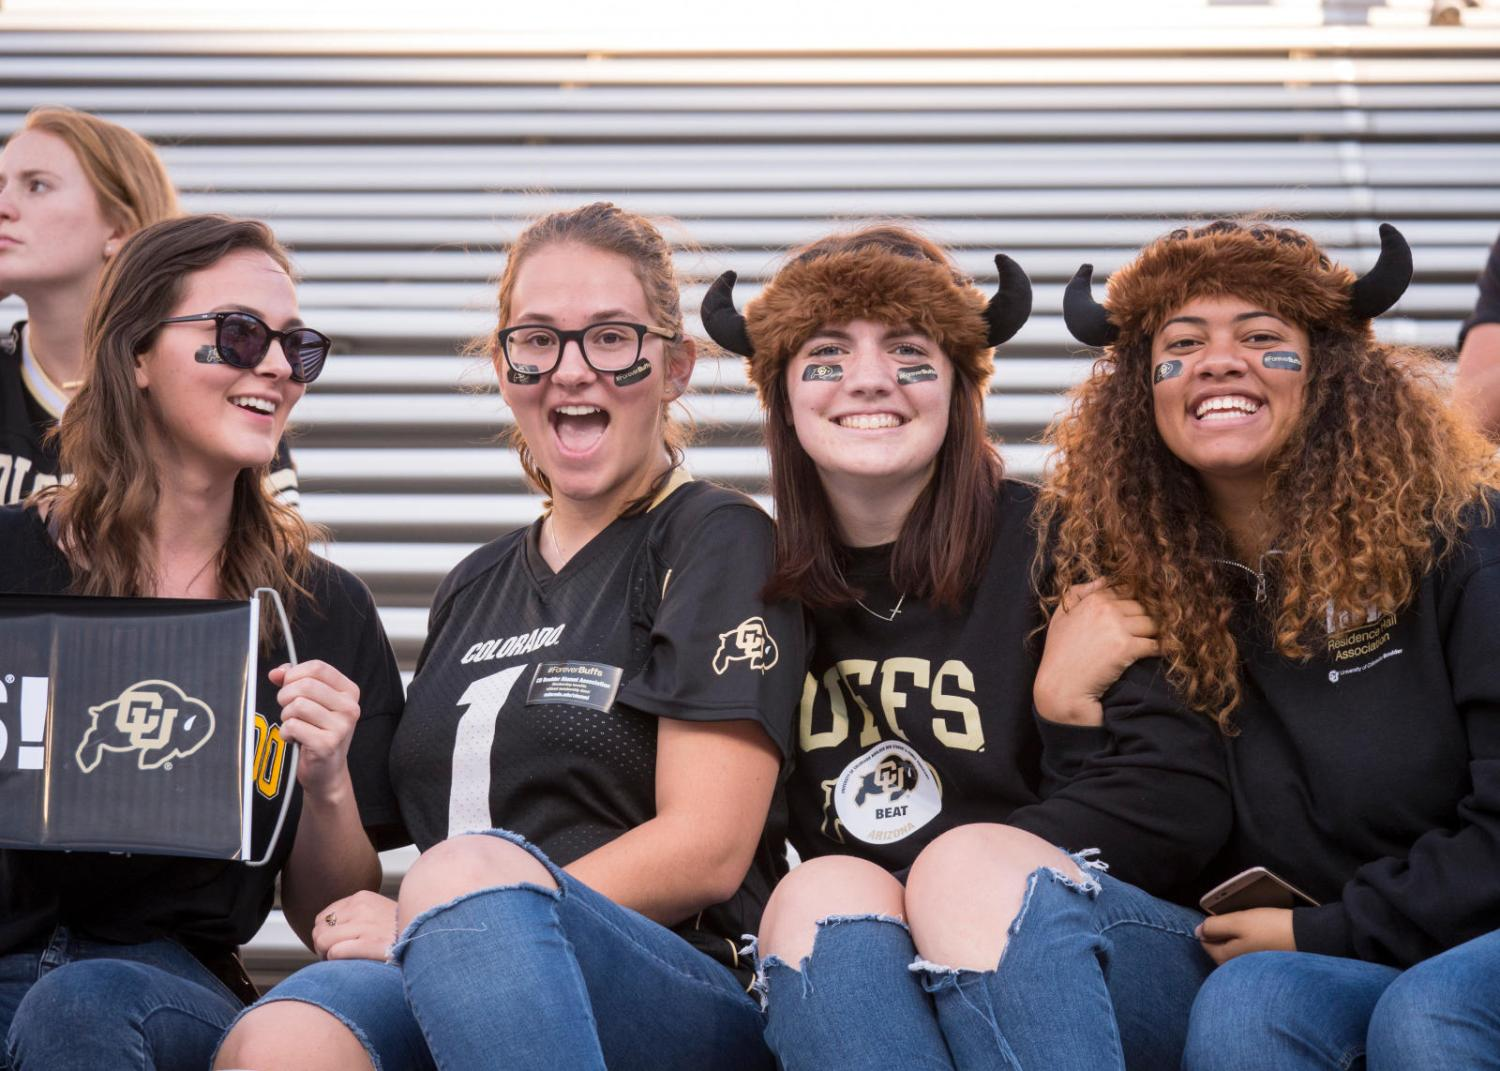 students in CU Boulder gear